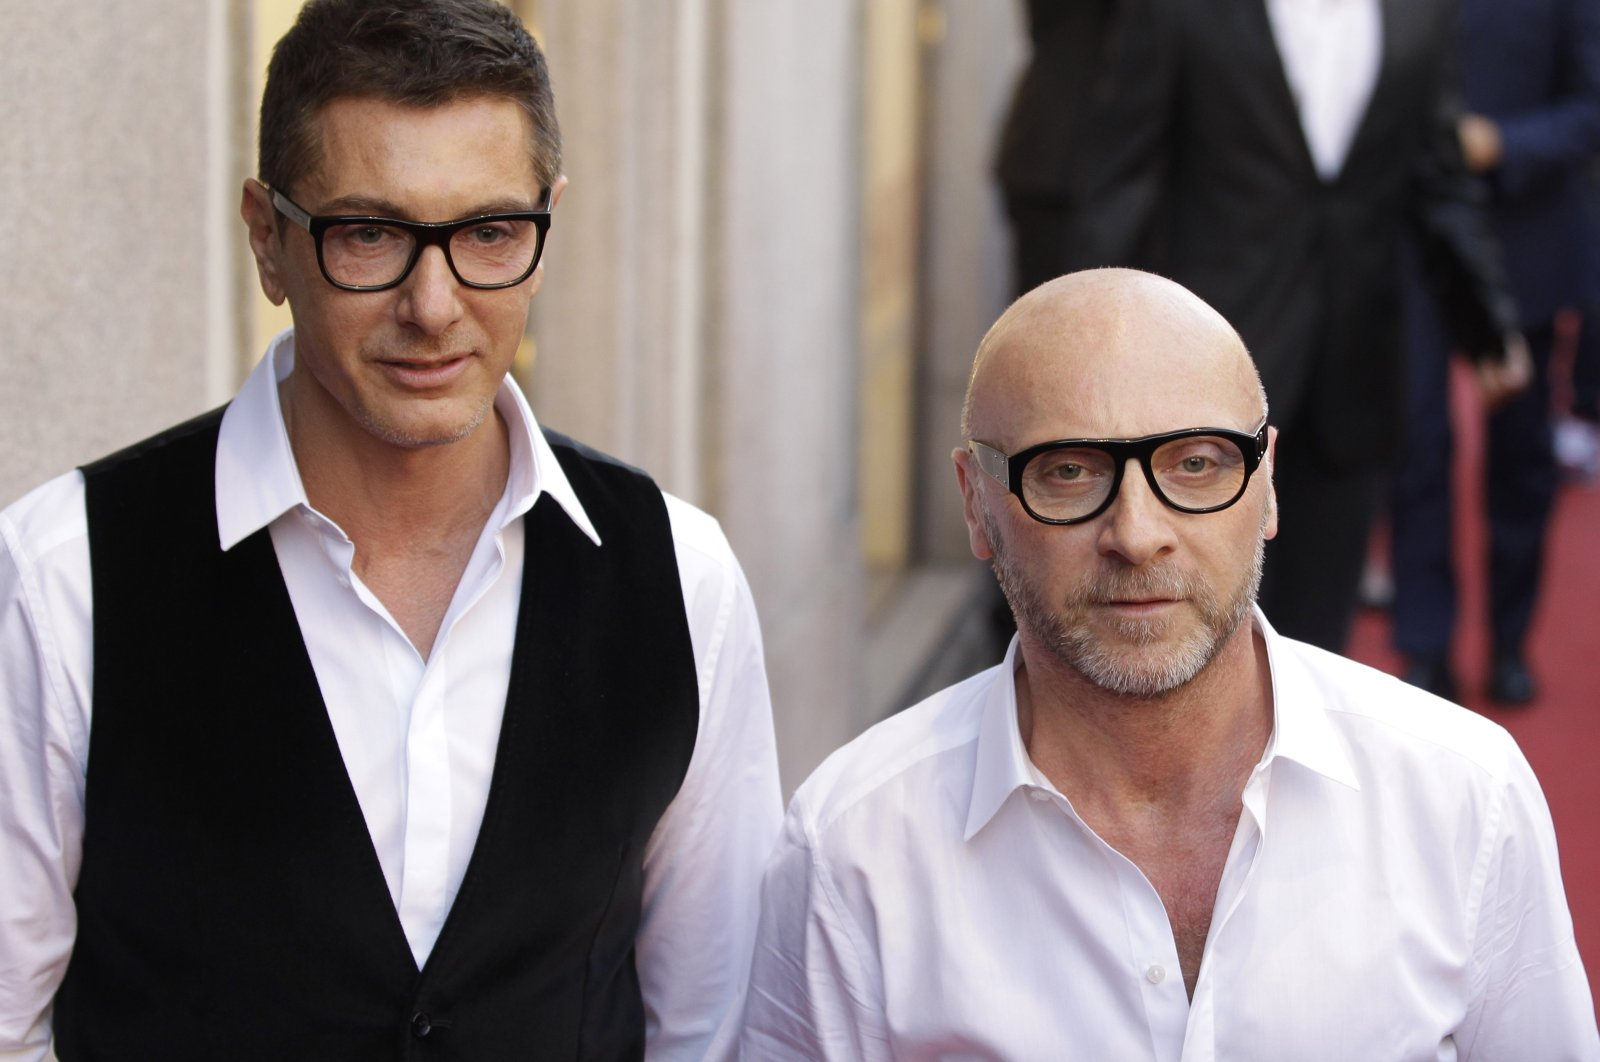 Fashion designers Stefano Gabbana (L) and Domenico Dolce arrive in downtown Milan, Italy, May 19, 2011. (AP Photo)